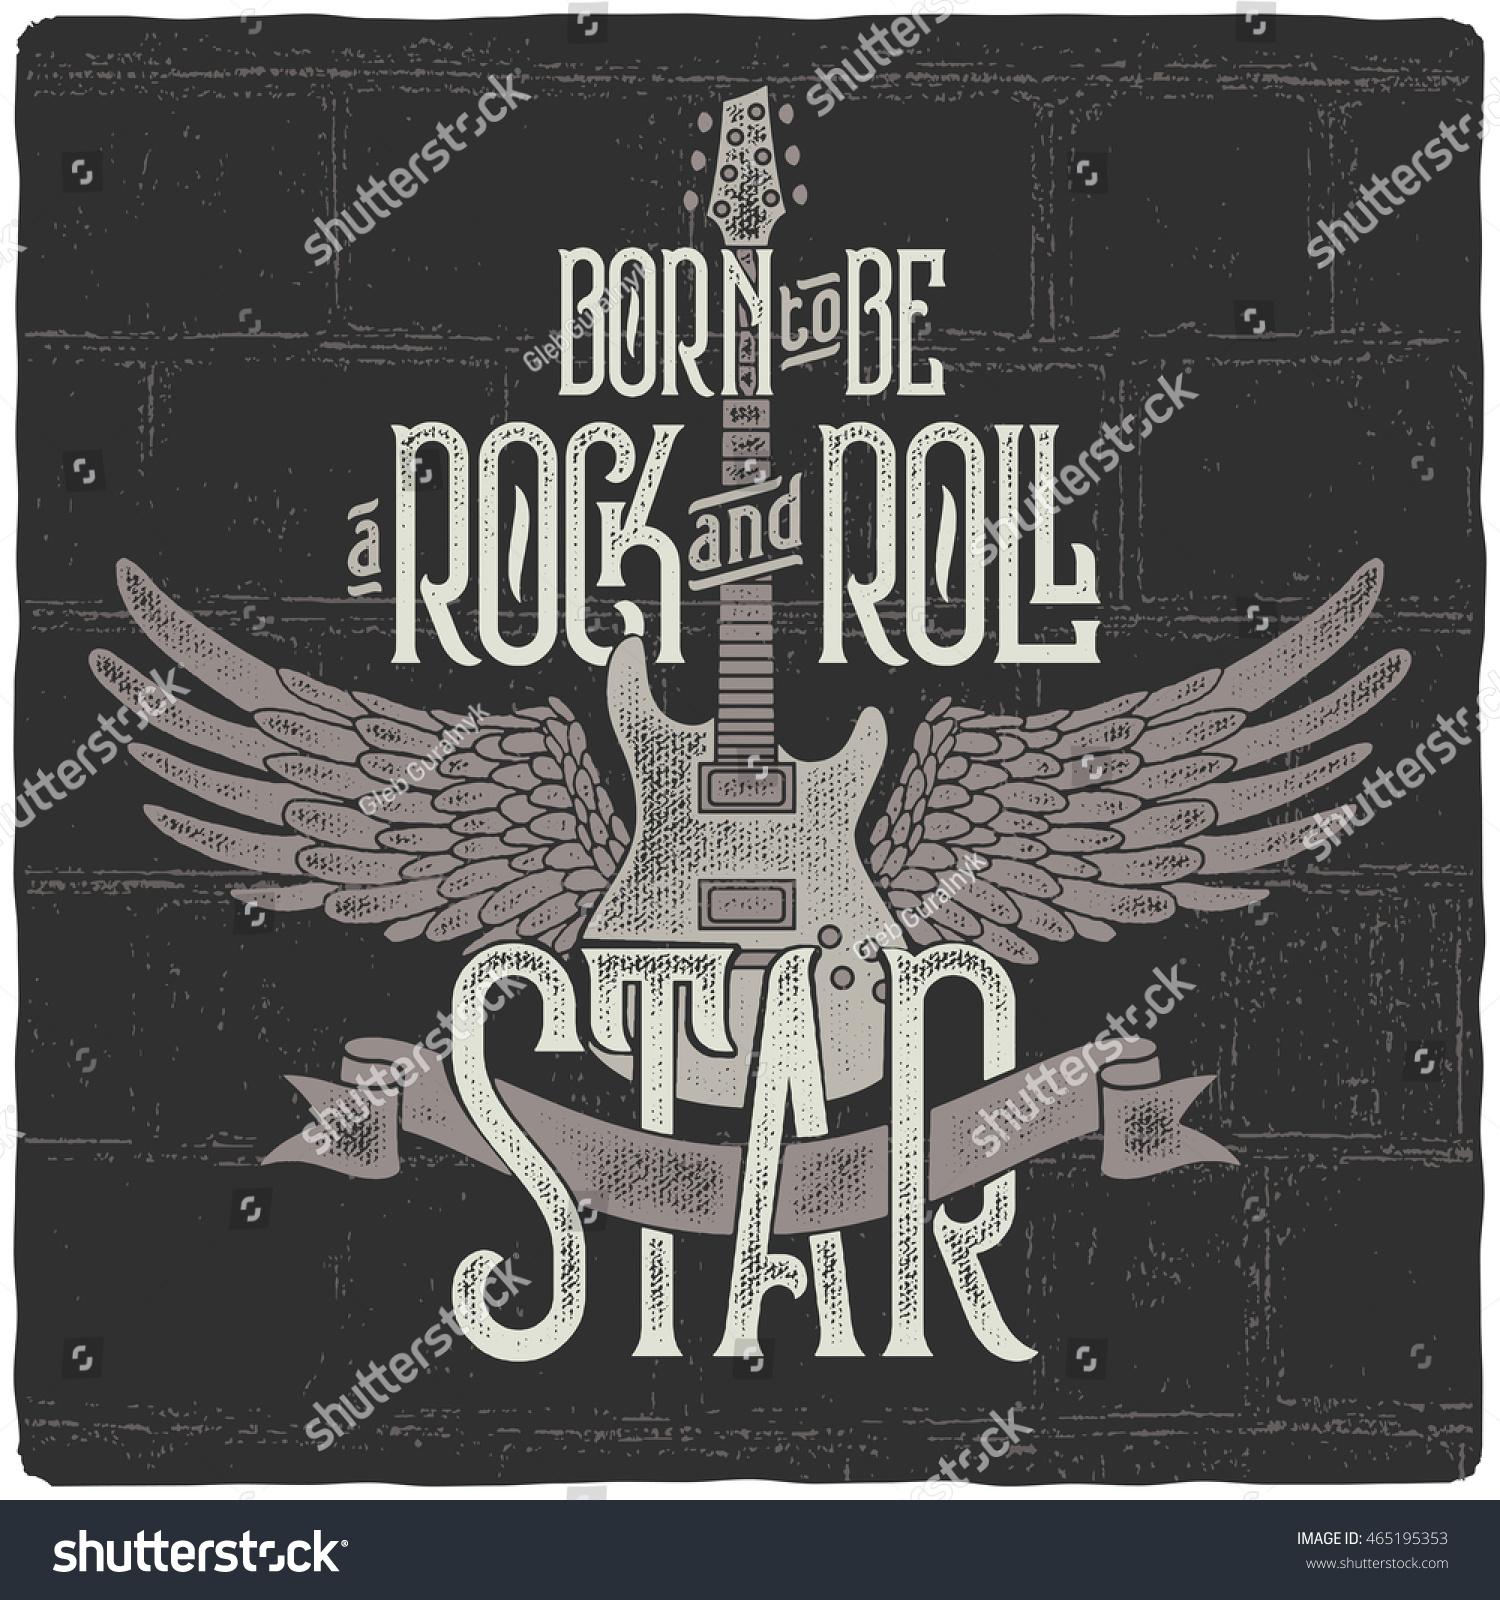 Vintage poster with guitar and wings With text slogan Born to be a rock and roll star